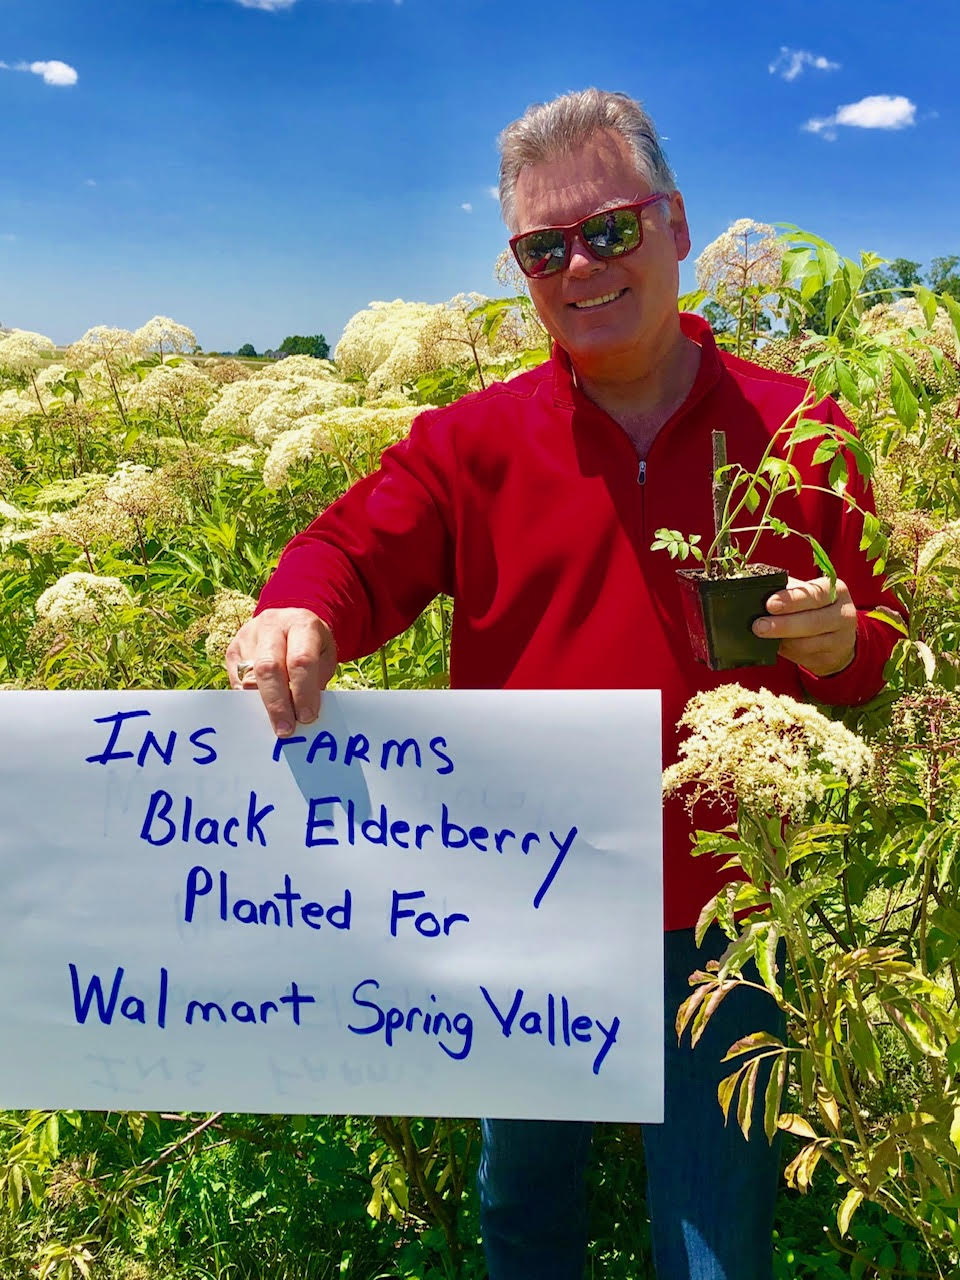 Plant-Elderberry-Walmart-Spring-Valley.jpg